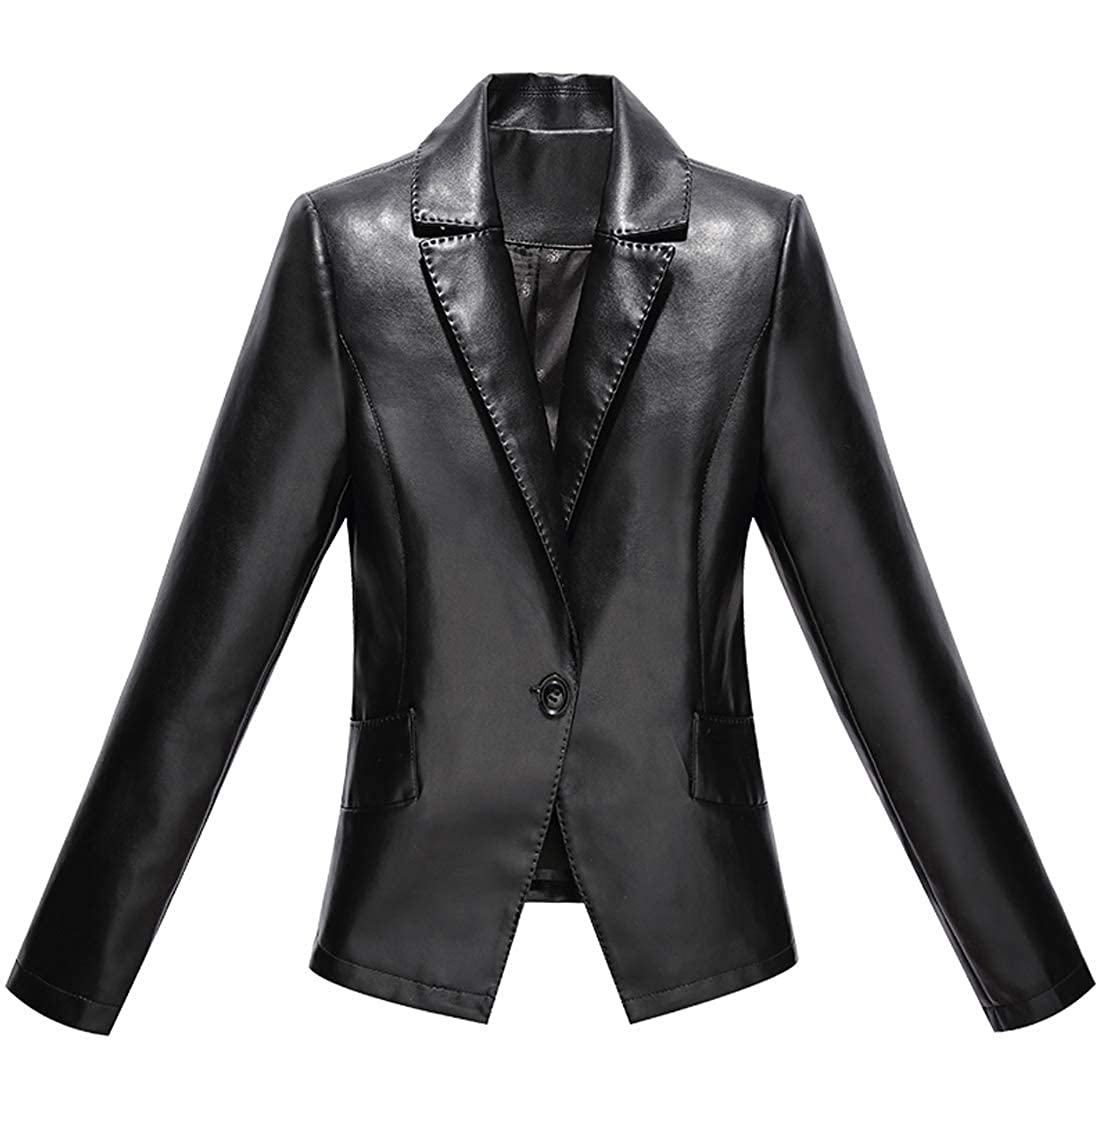 Jenkoon Womens One Button Faux Leather Blazer Casual Short Jacket Stitching Detail